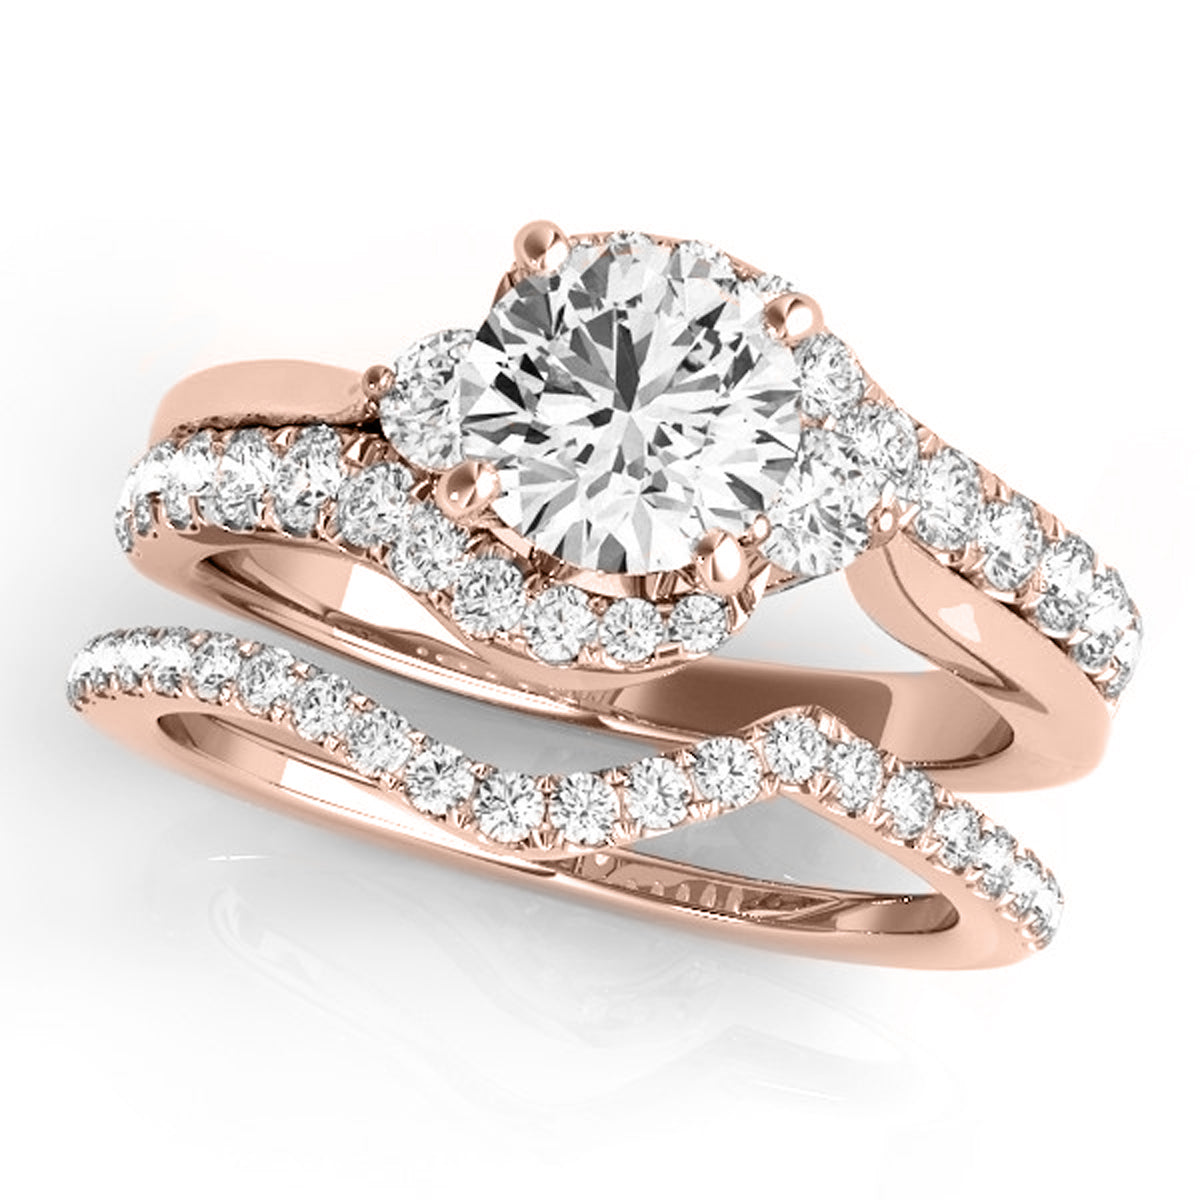 1 1/4 Carat T.W Two Tone Diamond Engagement Bridal Ring Set in 14K ...